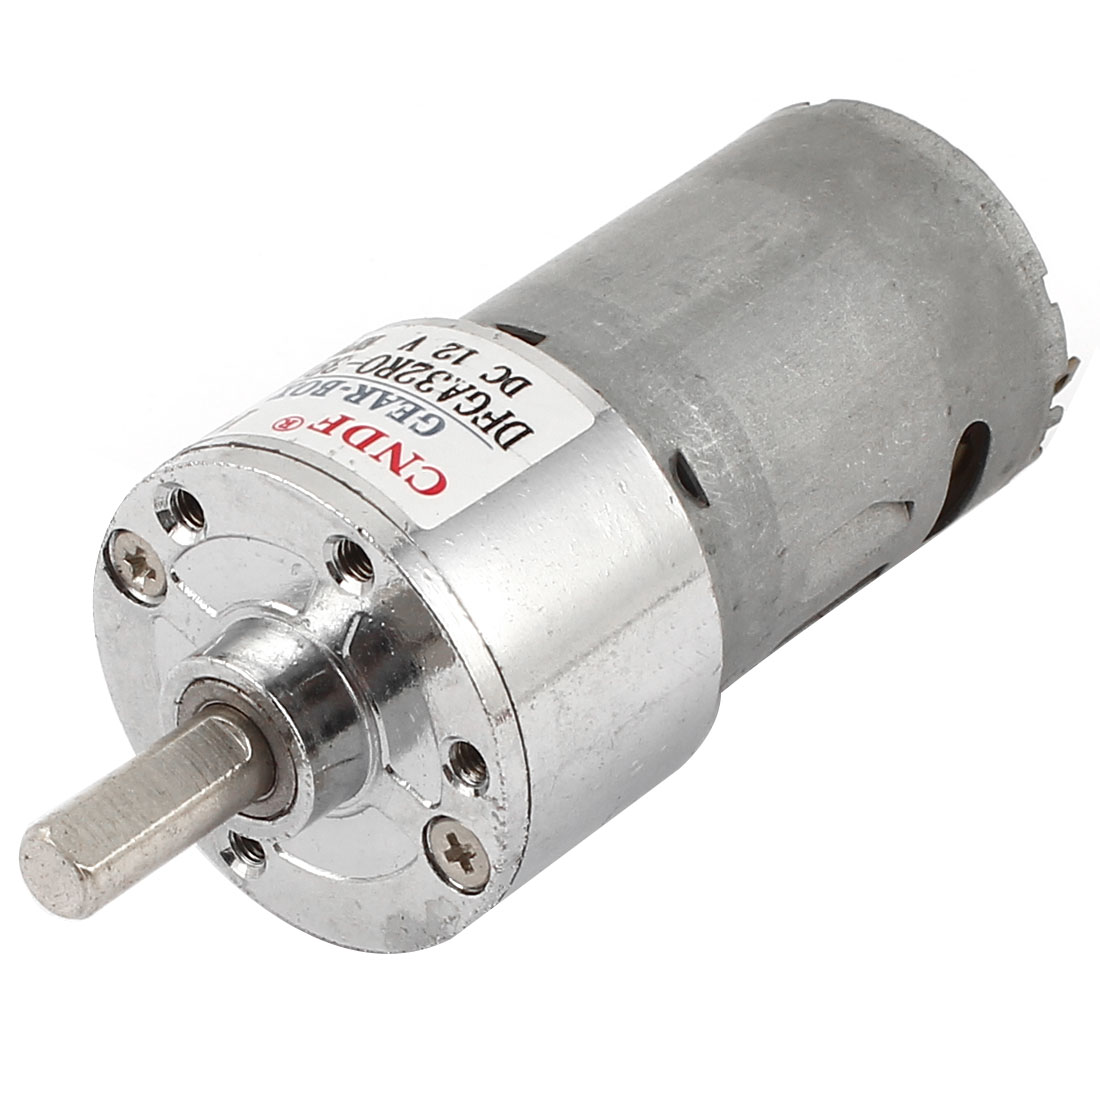 12V DC 300RPM 6mm Shaft Magnetic Electric Gear Box Motor Replacement